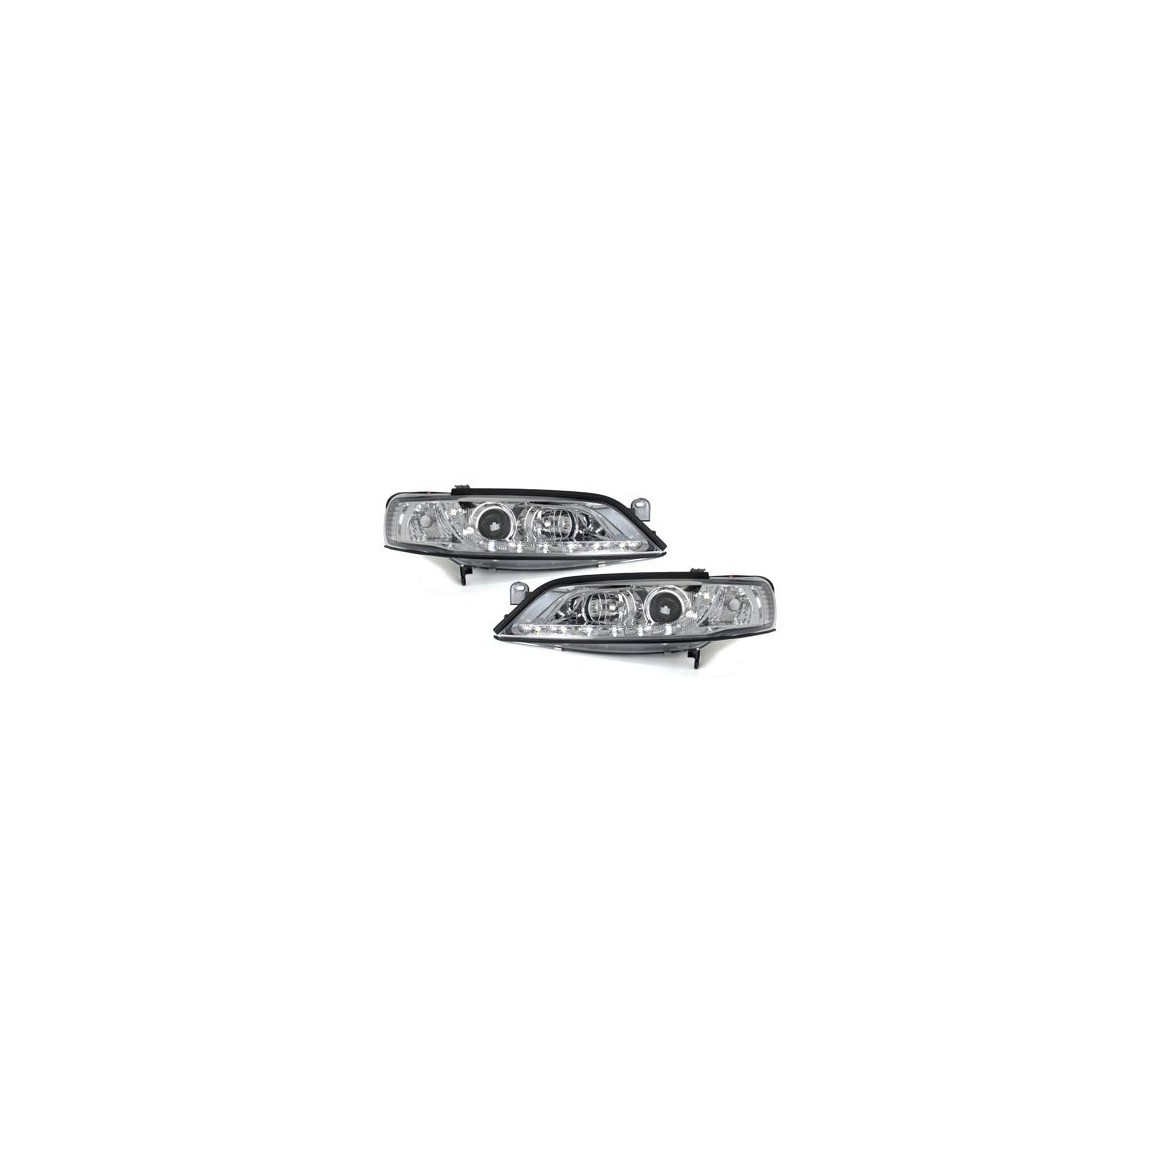 Lot 2 phares DECTANE DRL look Opel Vectra B 96-99_drl optic_chrome